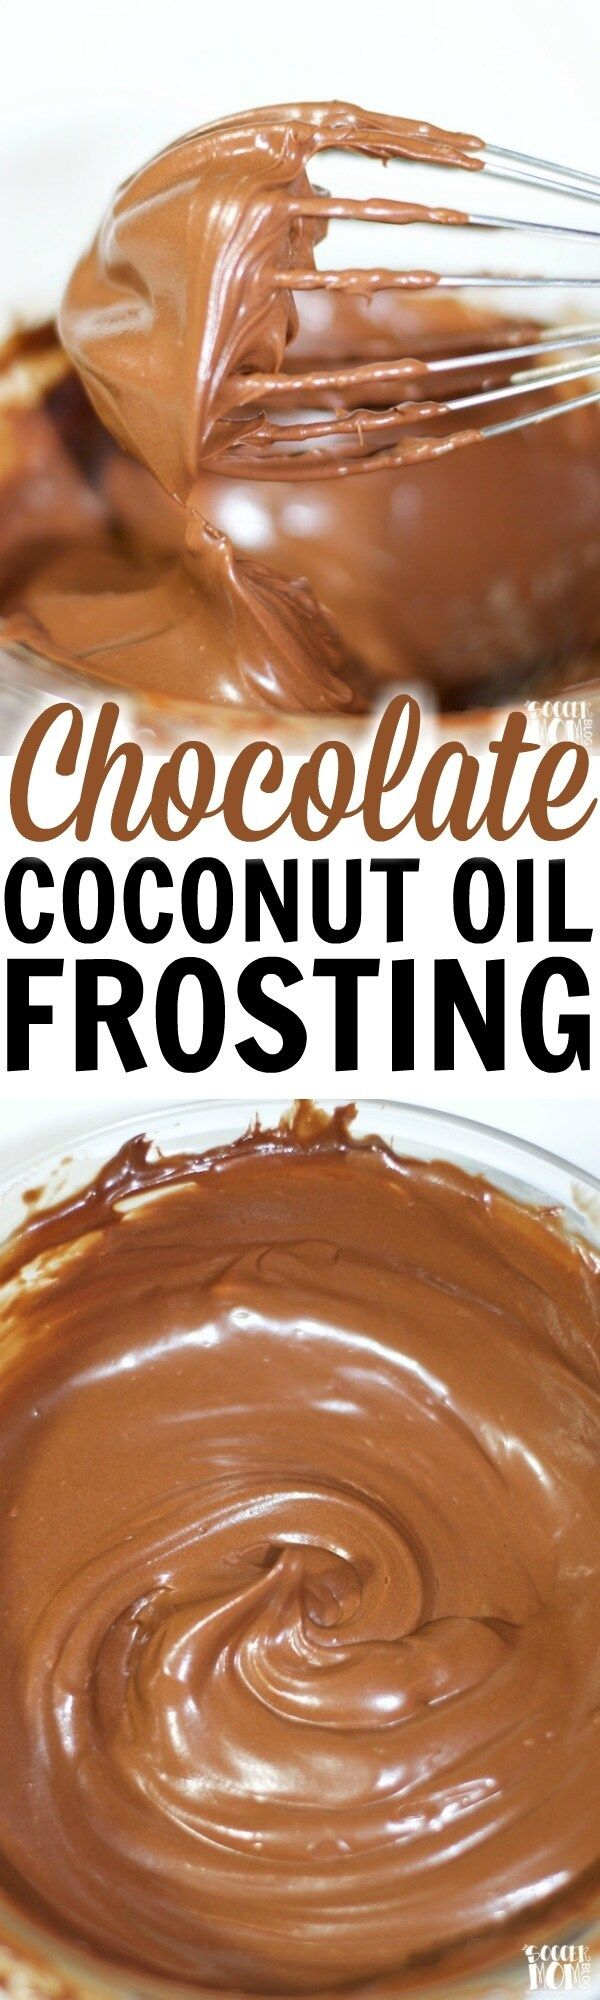 It really is like dessert magic!! You only need 2 ingredients to create this decadent Dark Chocolate Coconut Oil Icing AND it makes two types of icing!